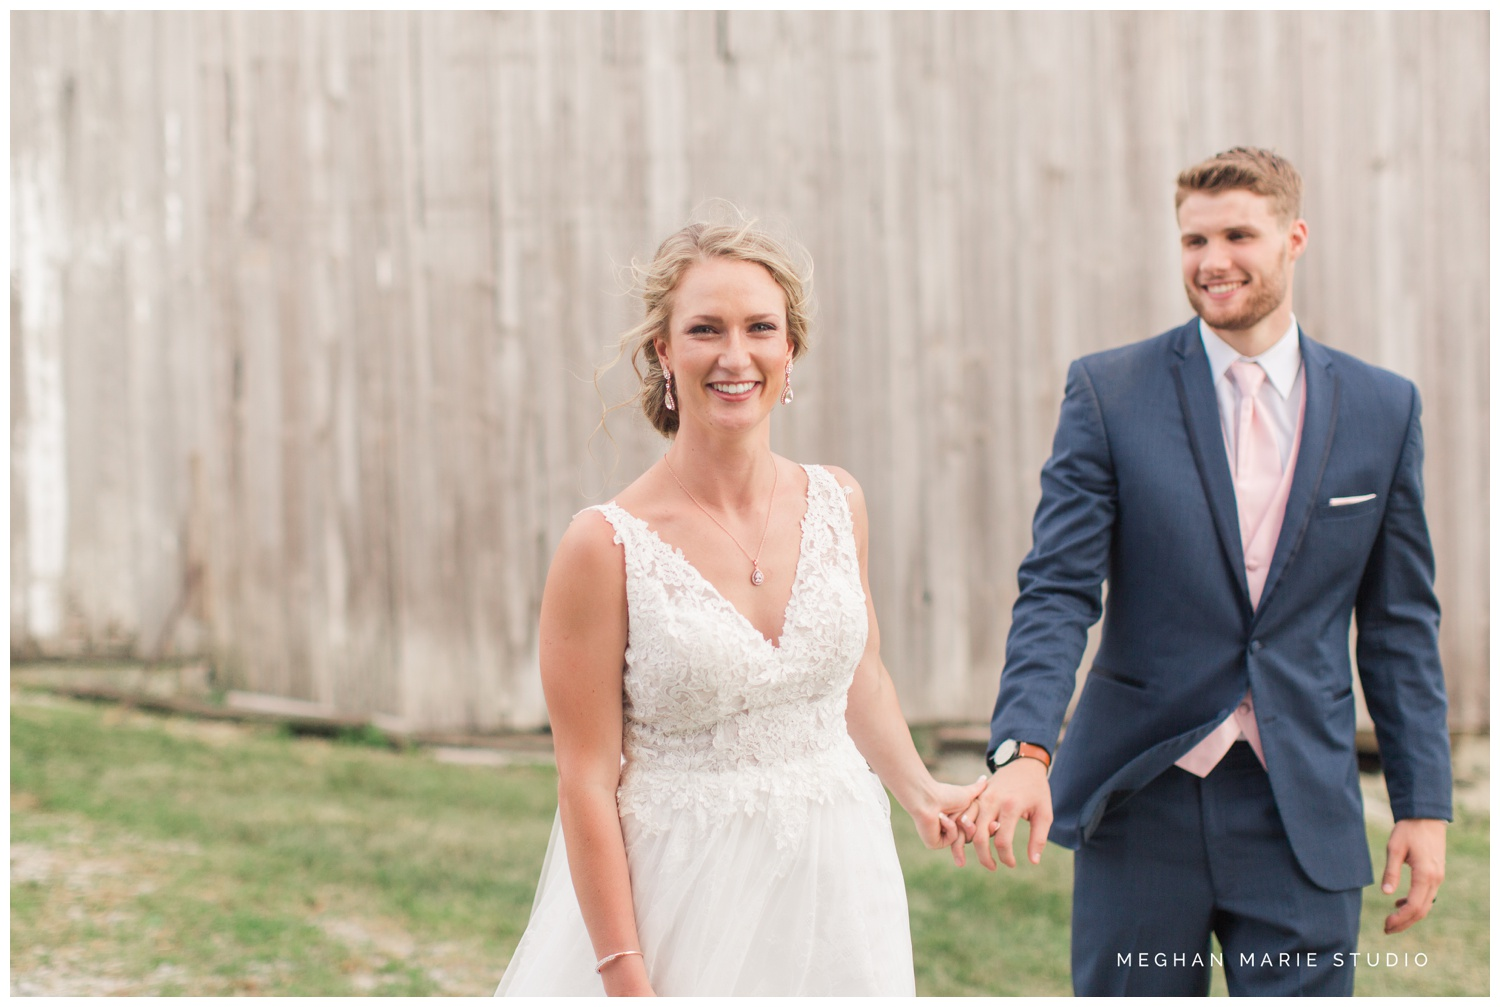 meghan marie studio ohio wedding kyle ahrens msu michigan state basketball spartans navy blush rustic barn soft warm bright bubbles catholic church_0386.jpg